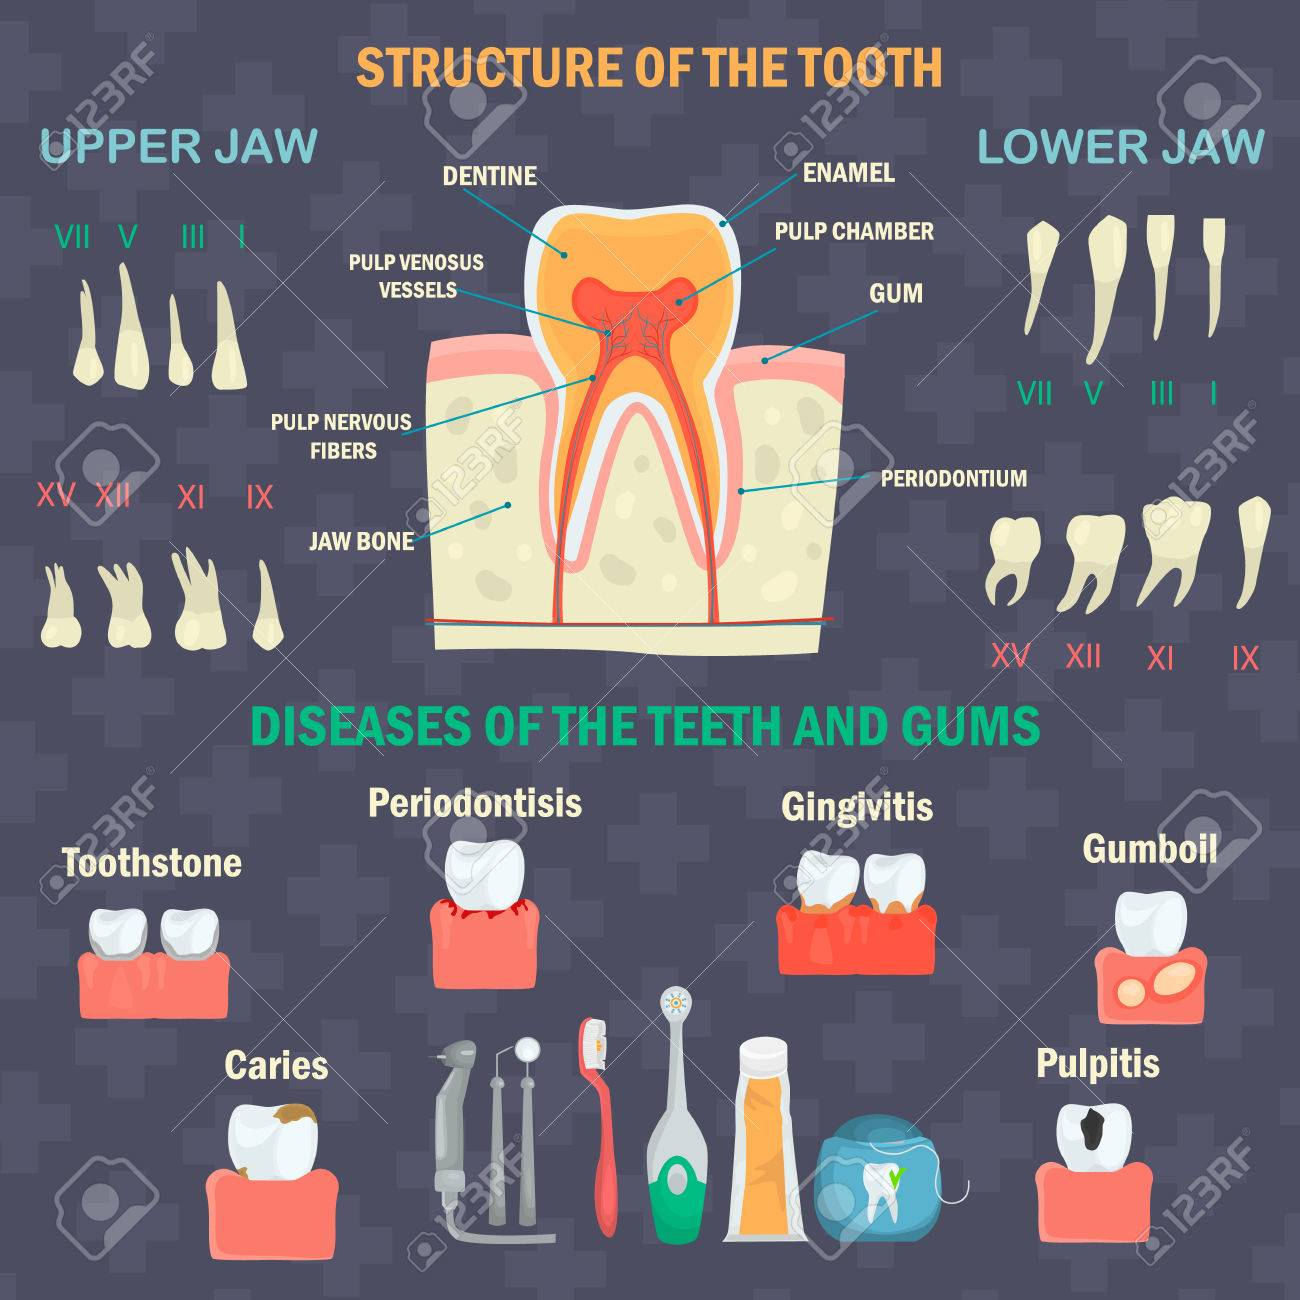 Tooth structure types of human teeth teeth diseases and hygiene tooth structure types of human teeth teeth diseases and hygiene products dental infgraphics biocorpaavc Image collections